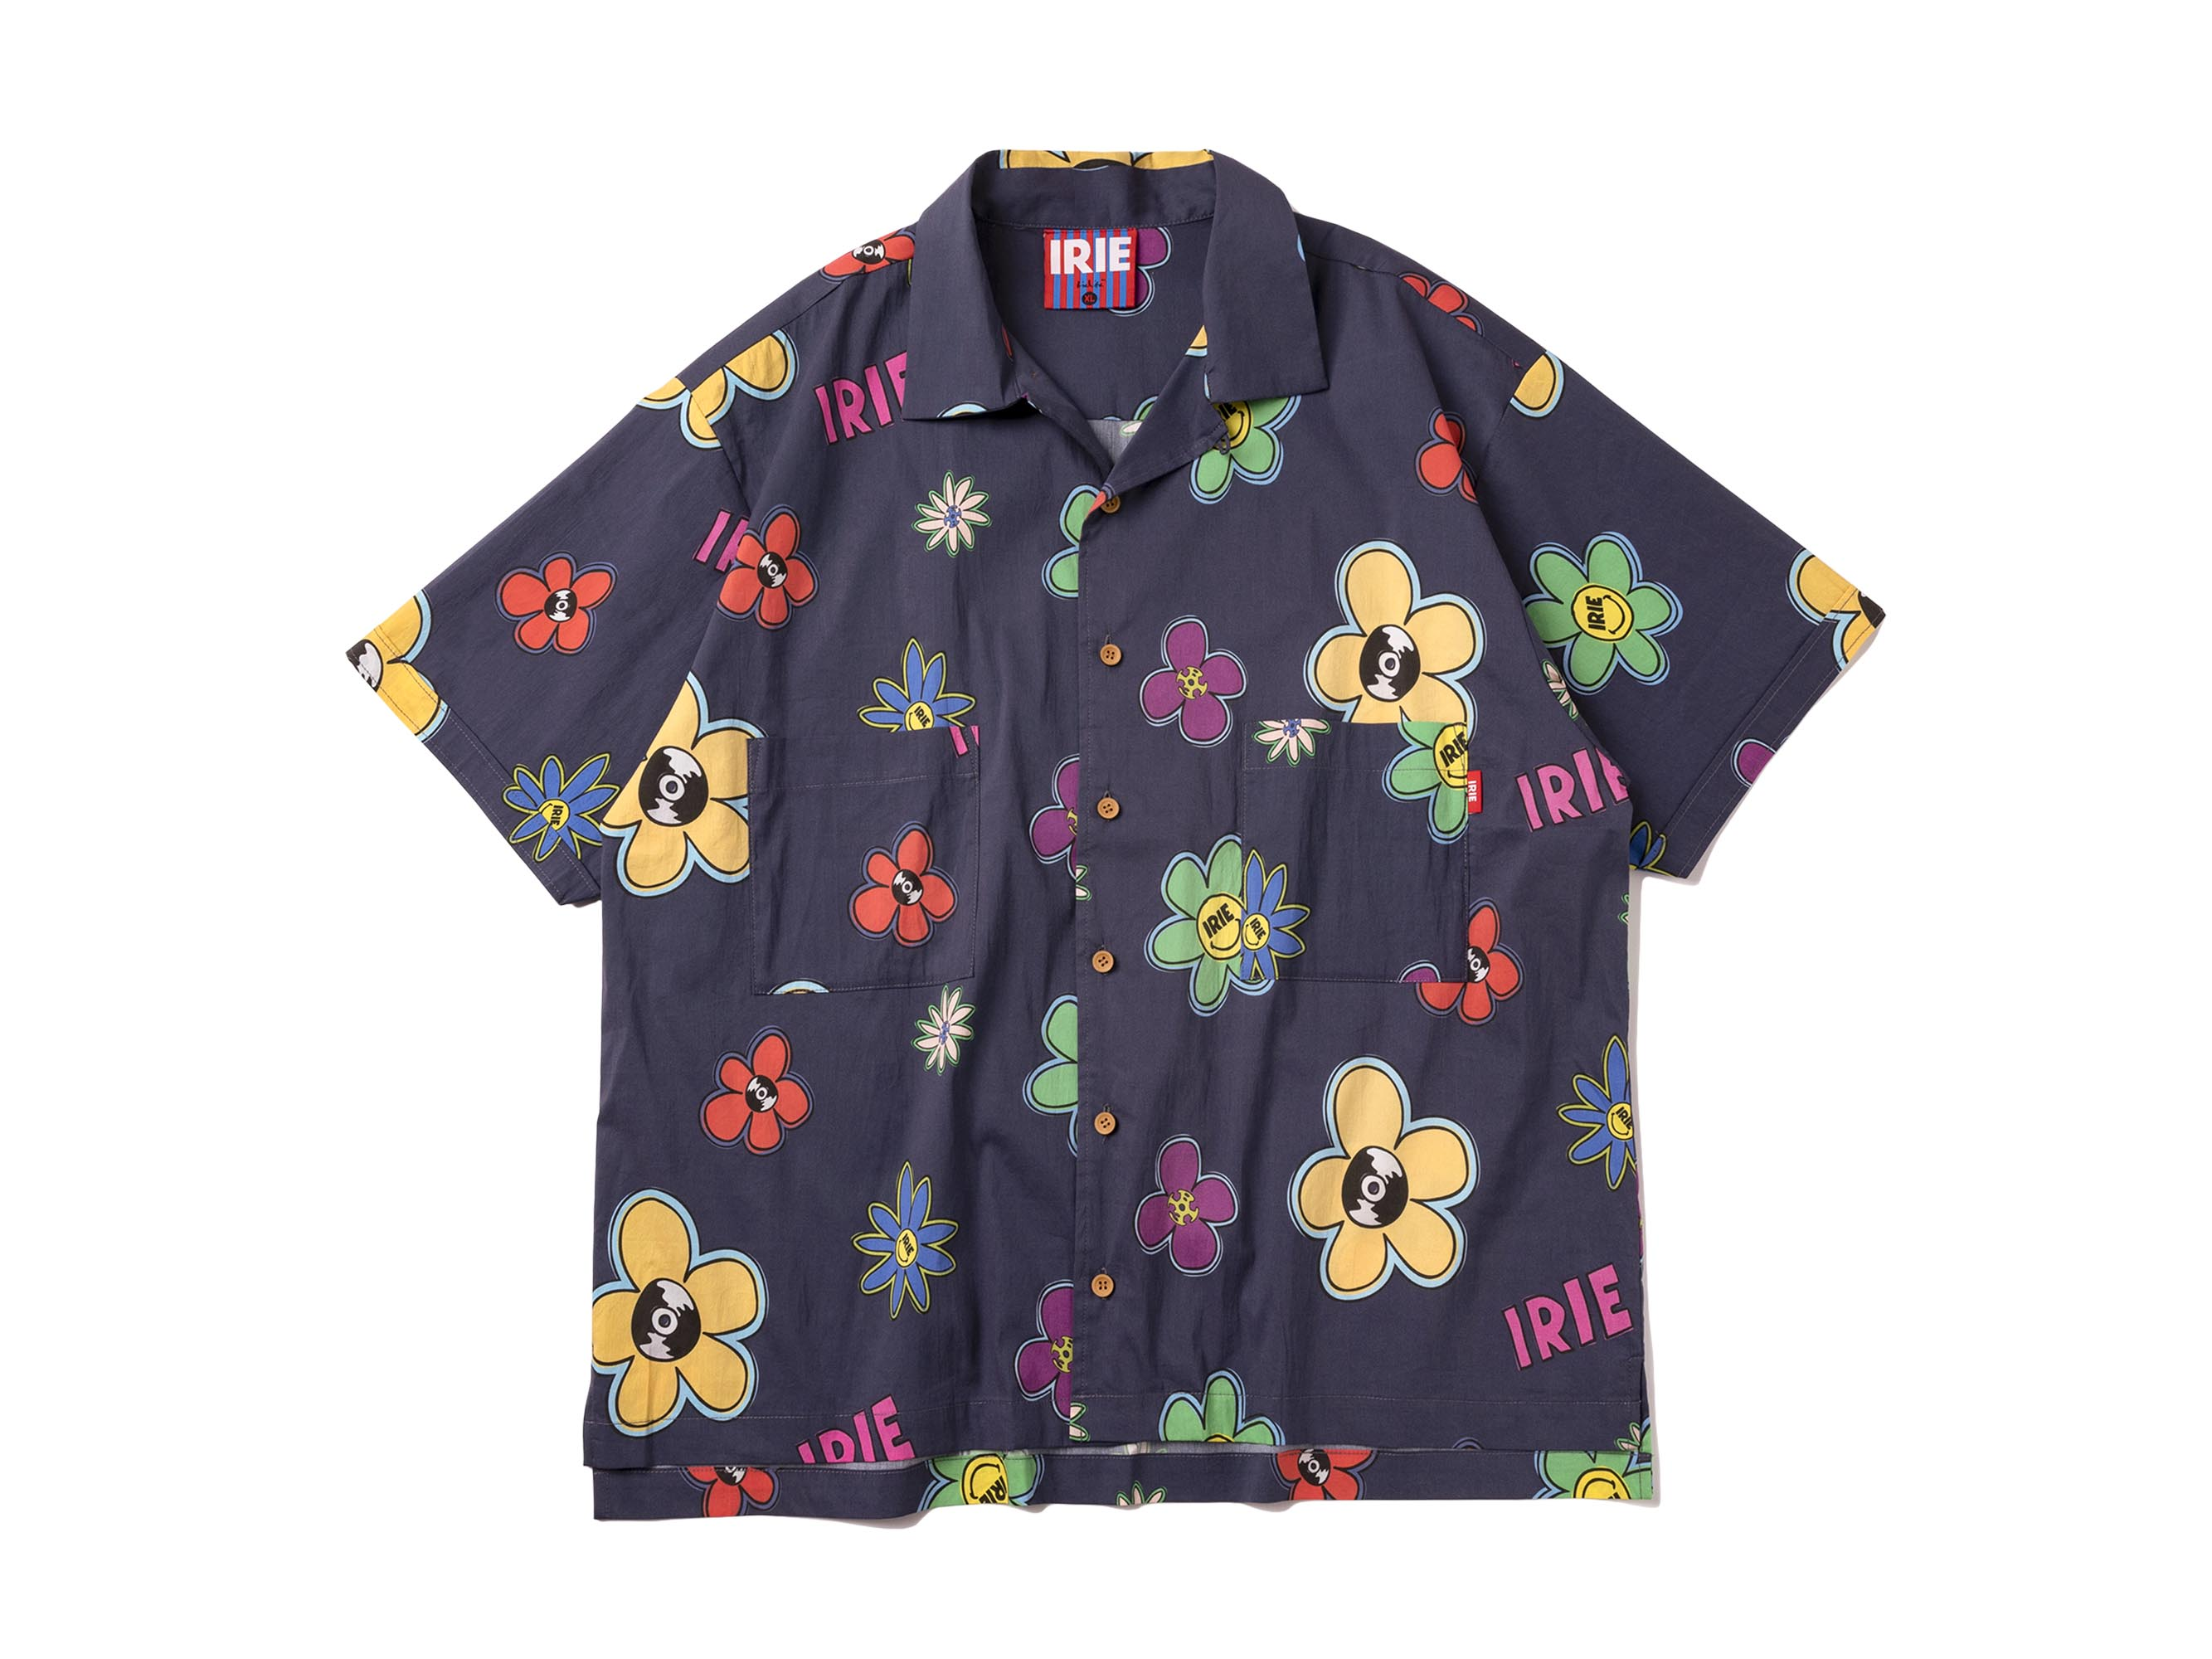 IRIE FLOWER ALOHA SHIRT - IRIE by irielife